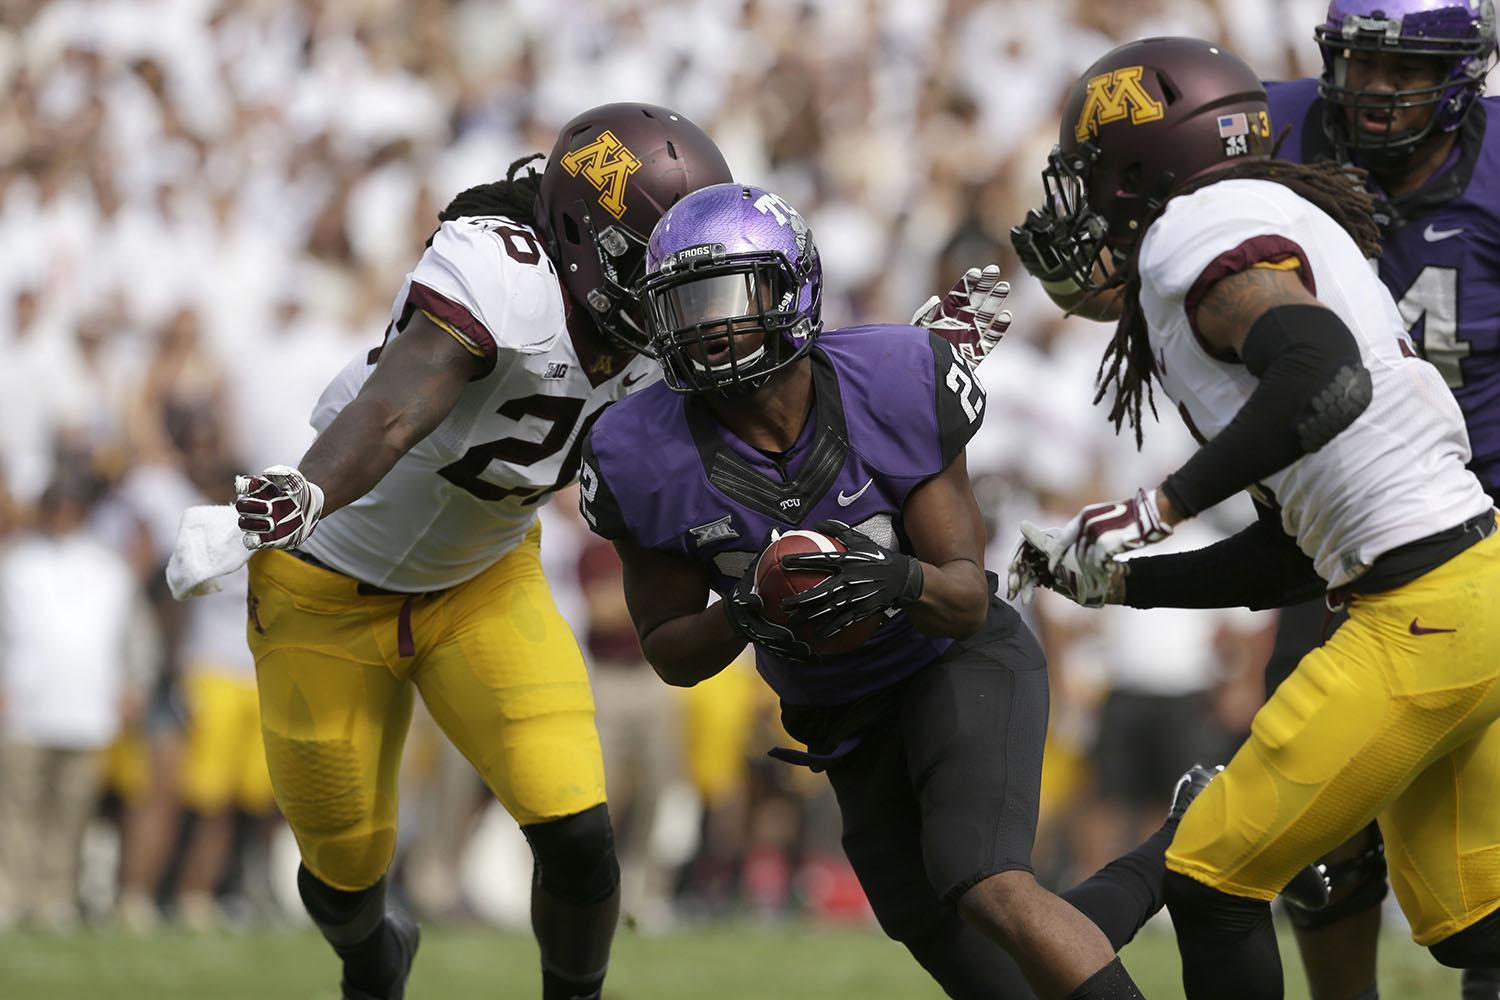 TCU running back Aaron Green (22) finds a hole against Minnesota defense during an NCAA college football game, Saturday, Sept. 13, 2014, in Fort Worth, Texas.(AP Photo/LM Otero)